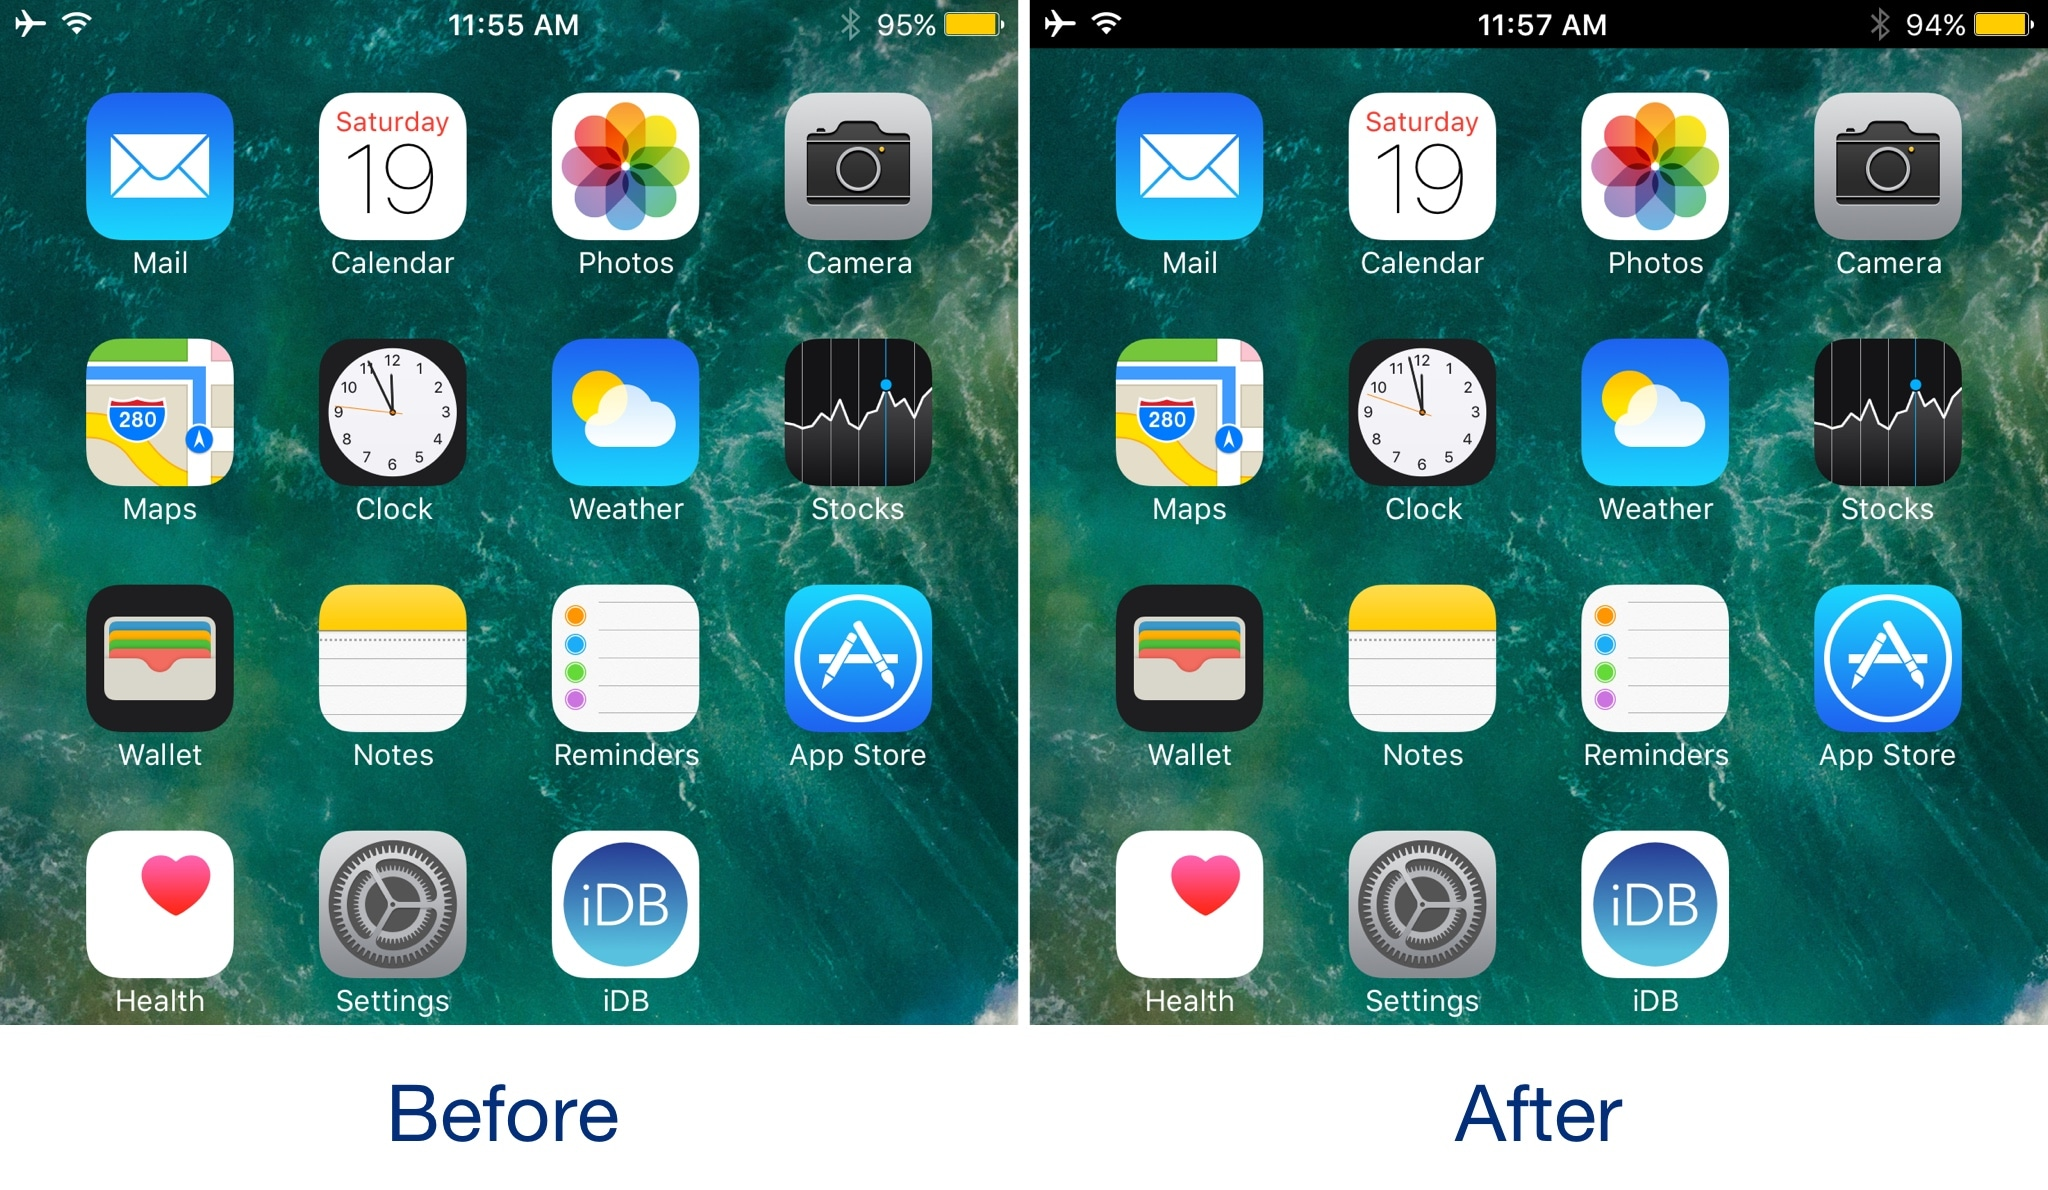 Back in the day the status bar never used to be the same color as the background behind it things changed drastically after the major ios 7 redesign and